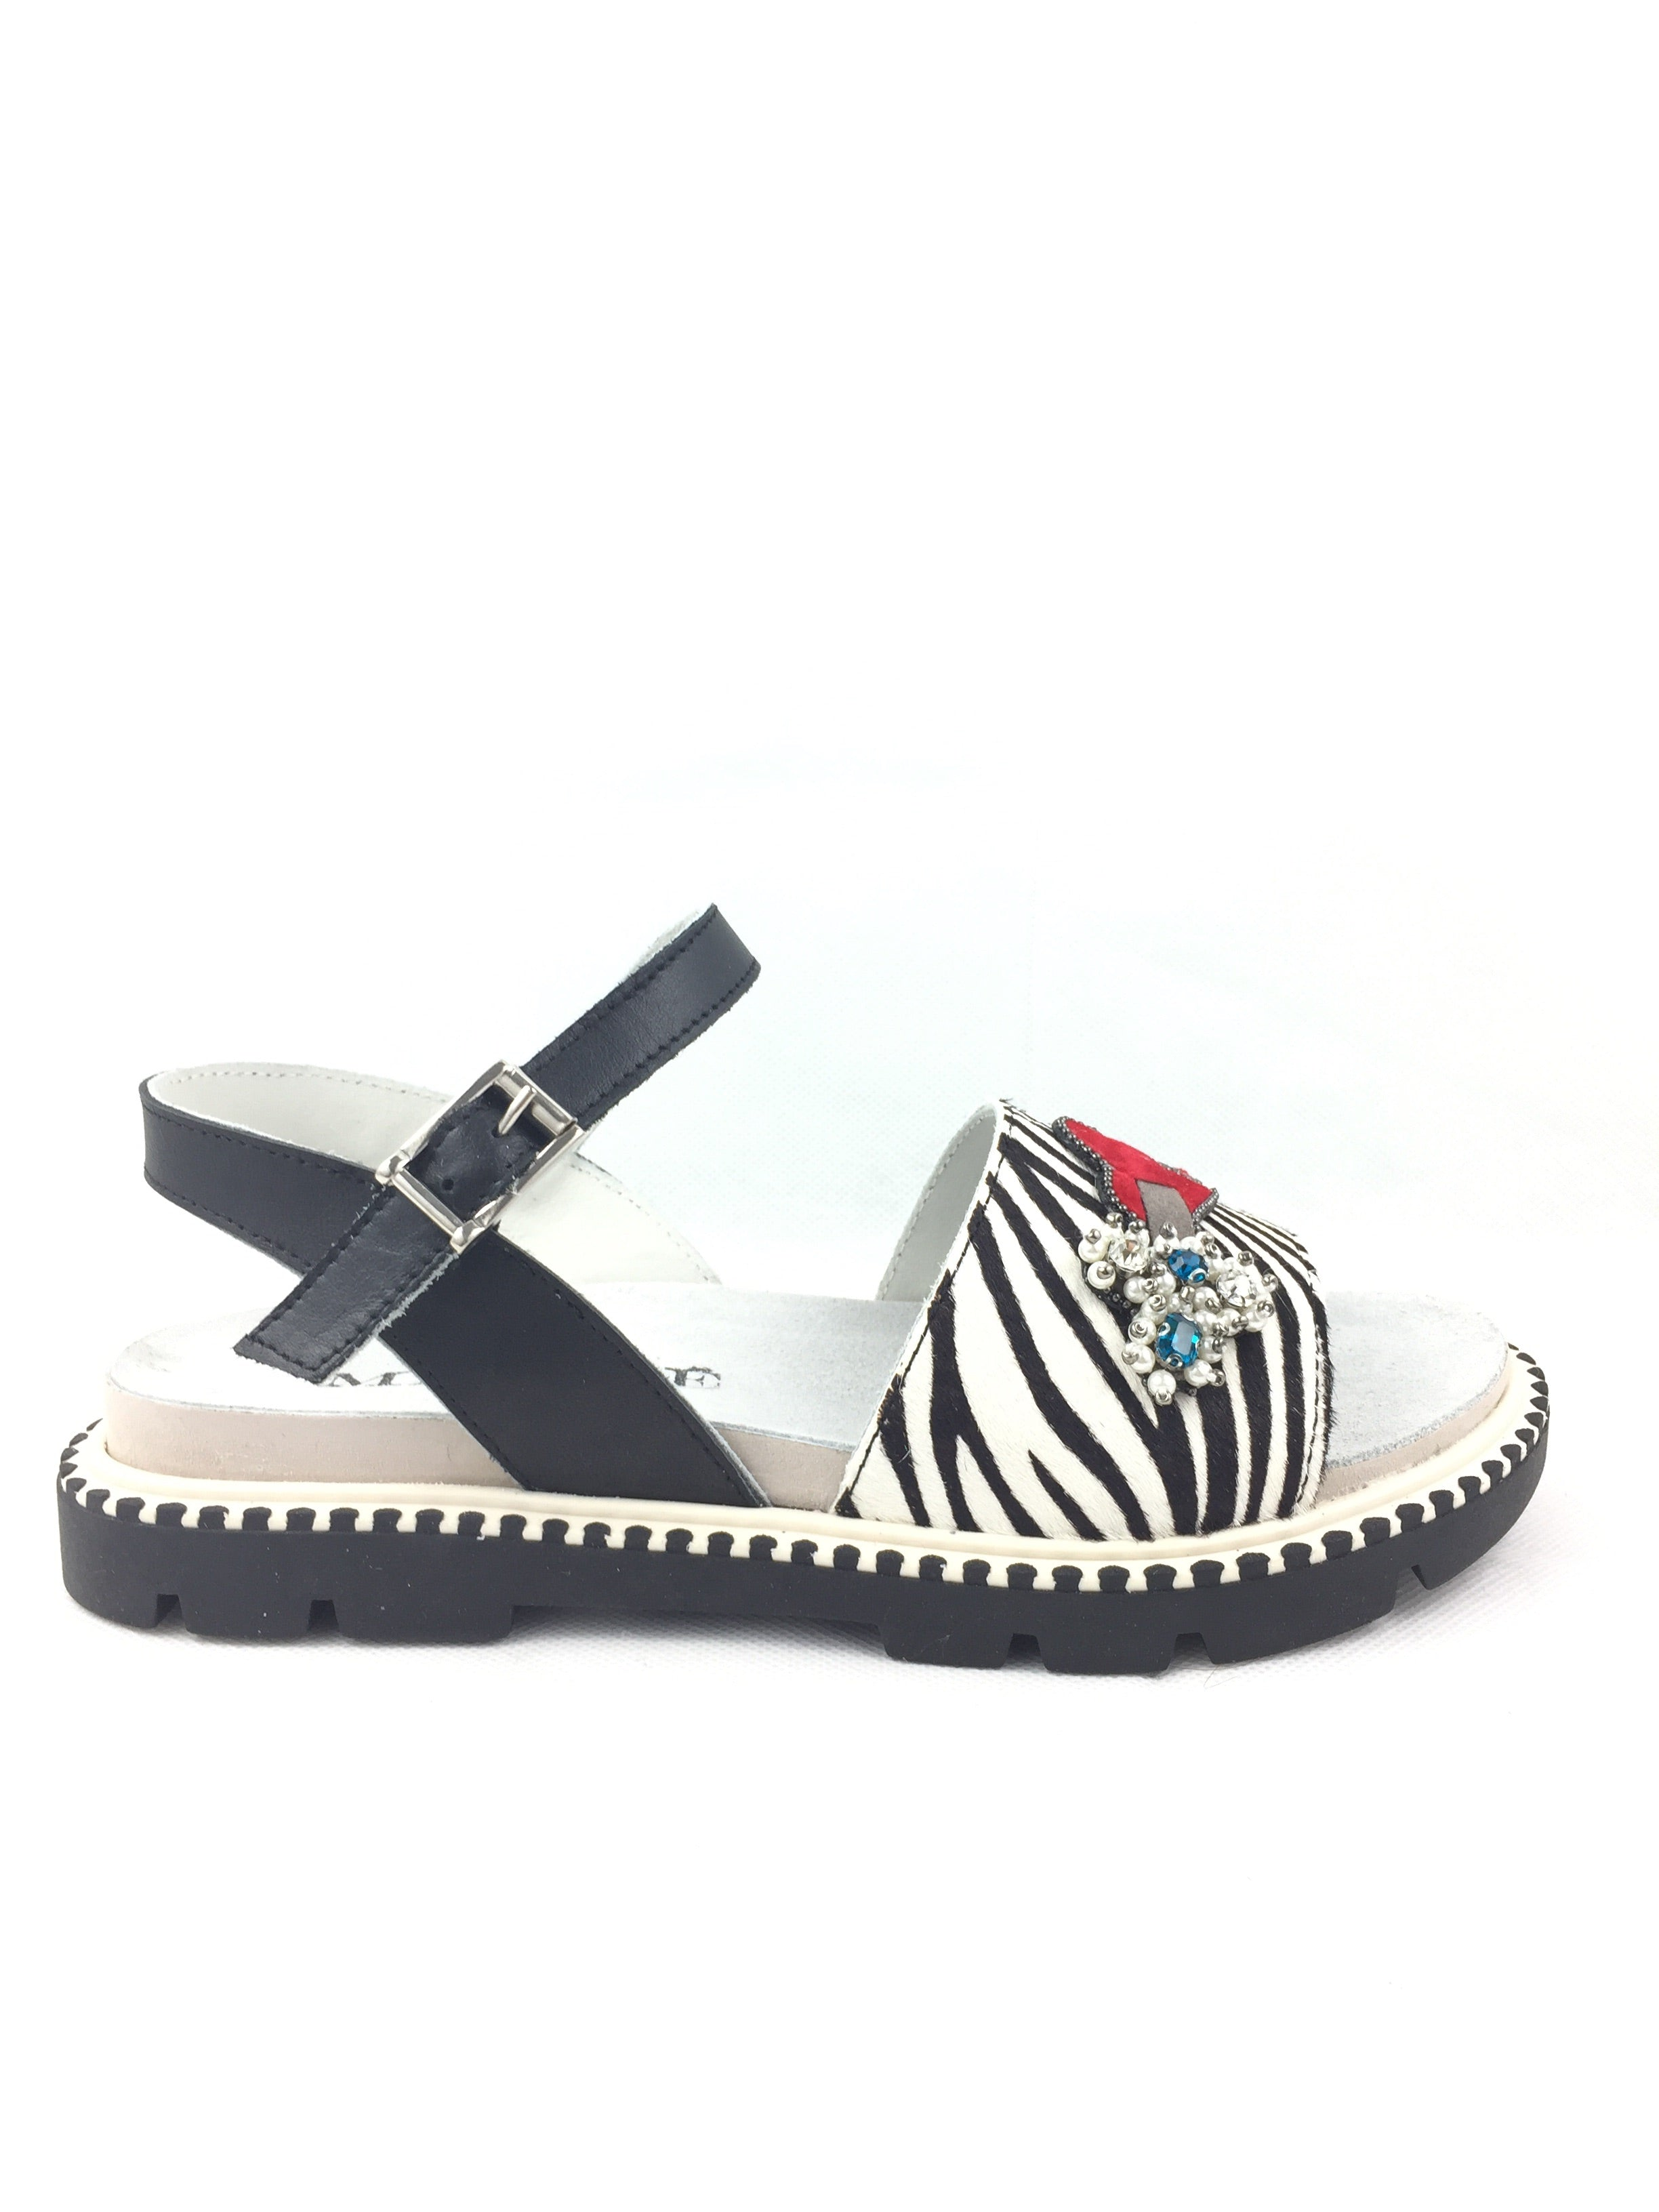 Meline Gucci Inspired Sandals